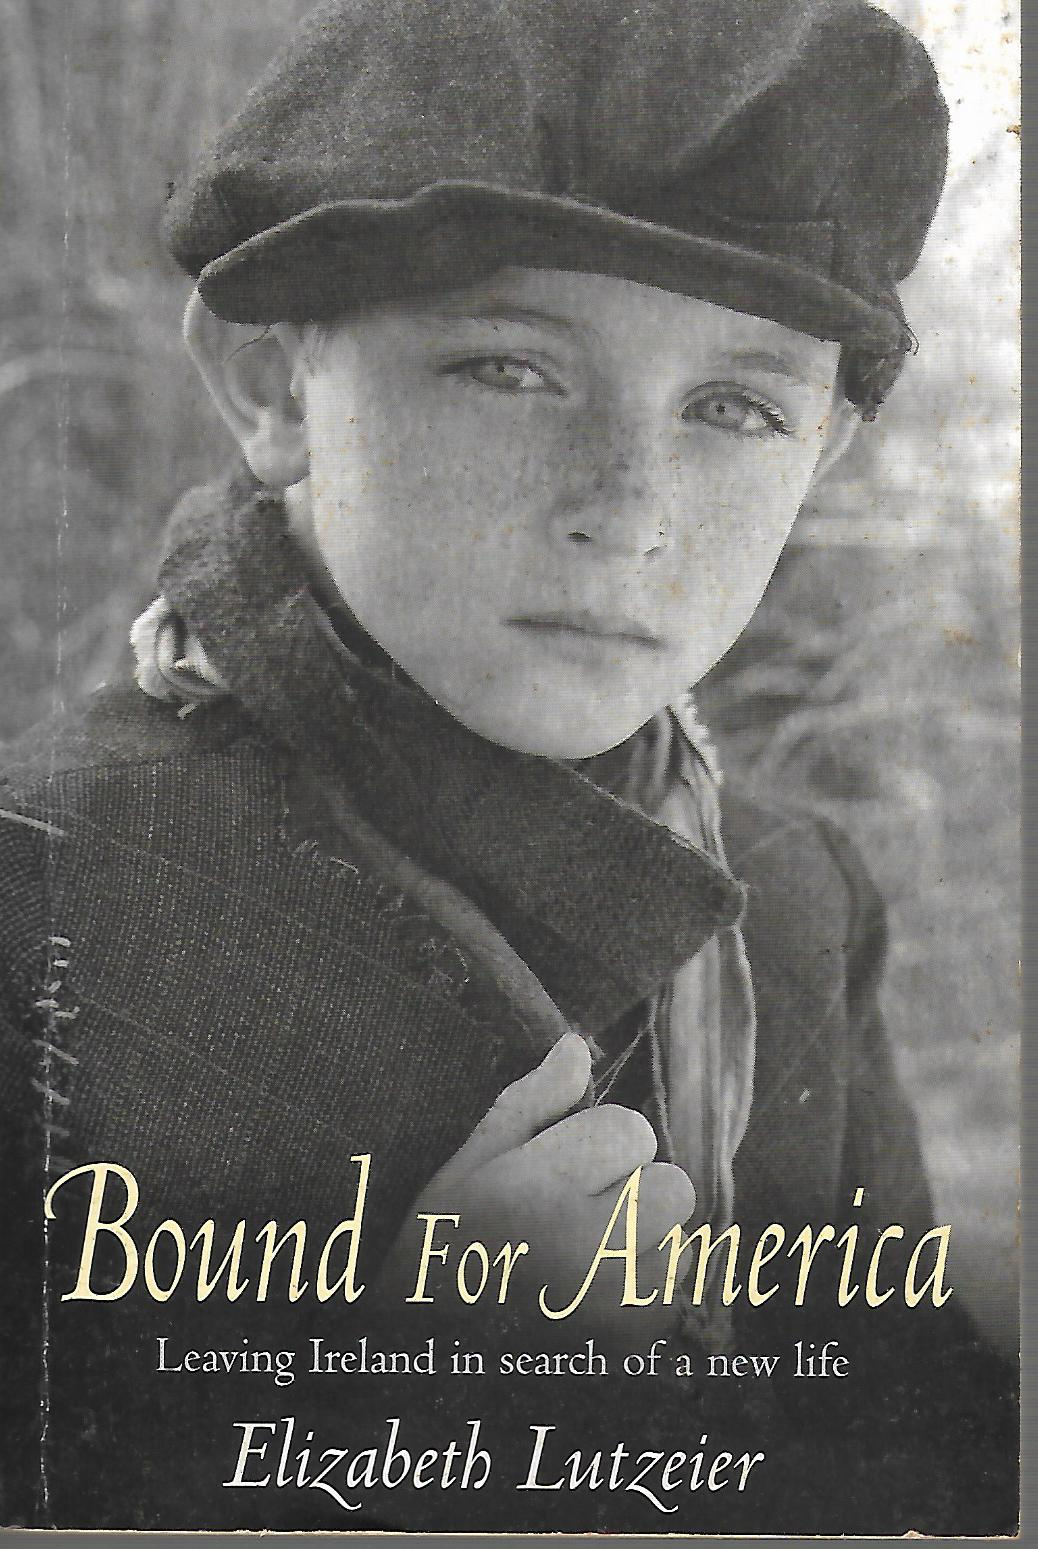 Bound for America: leaving Ireland in Search of a New Life